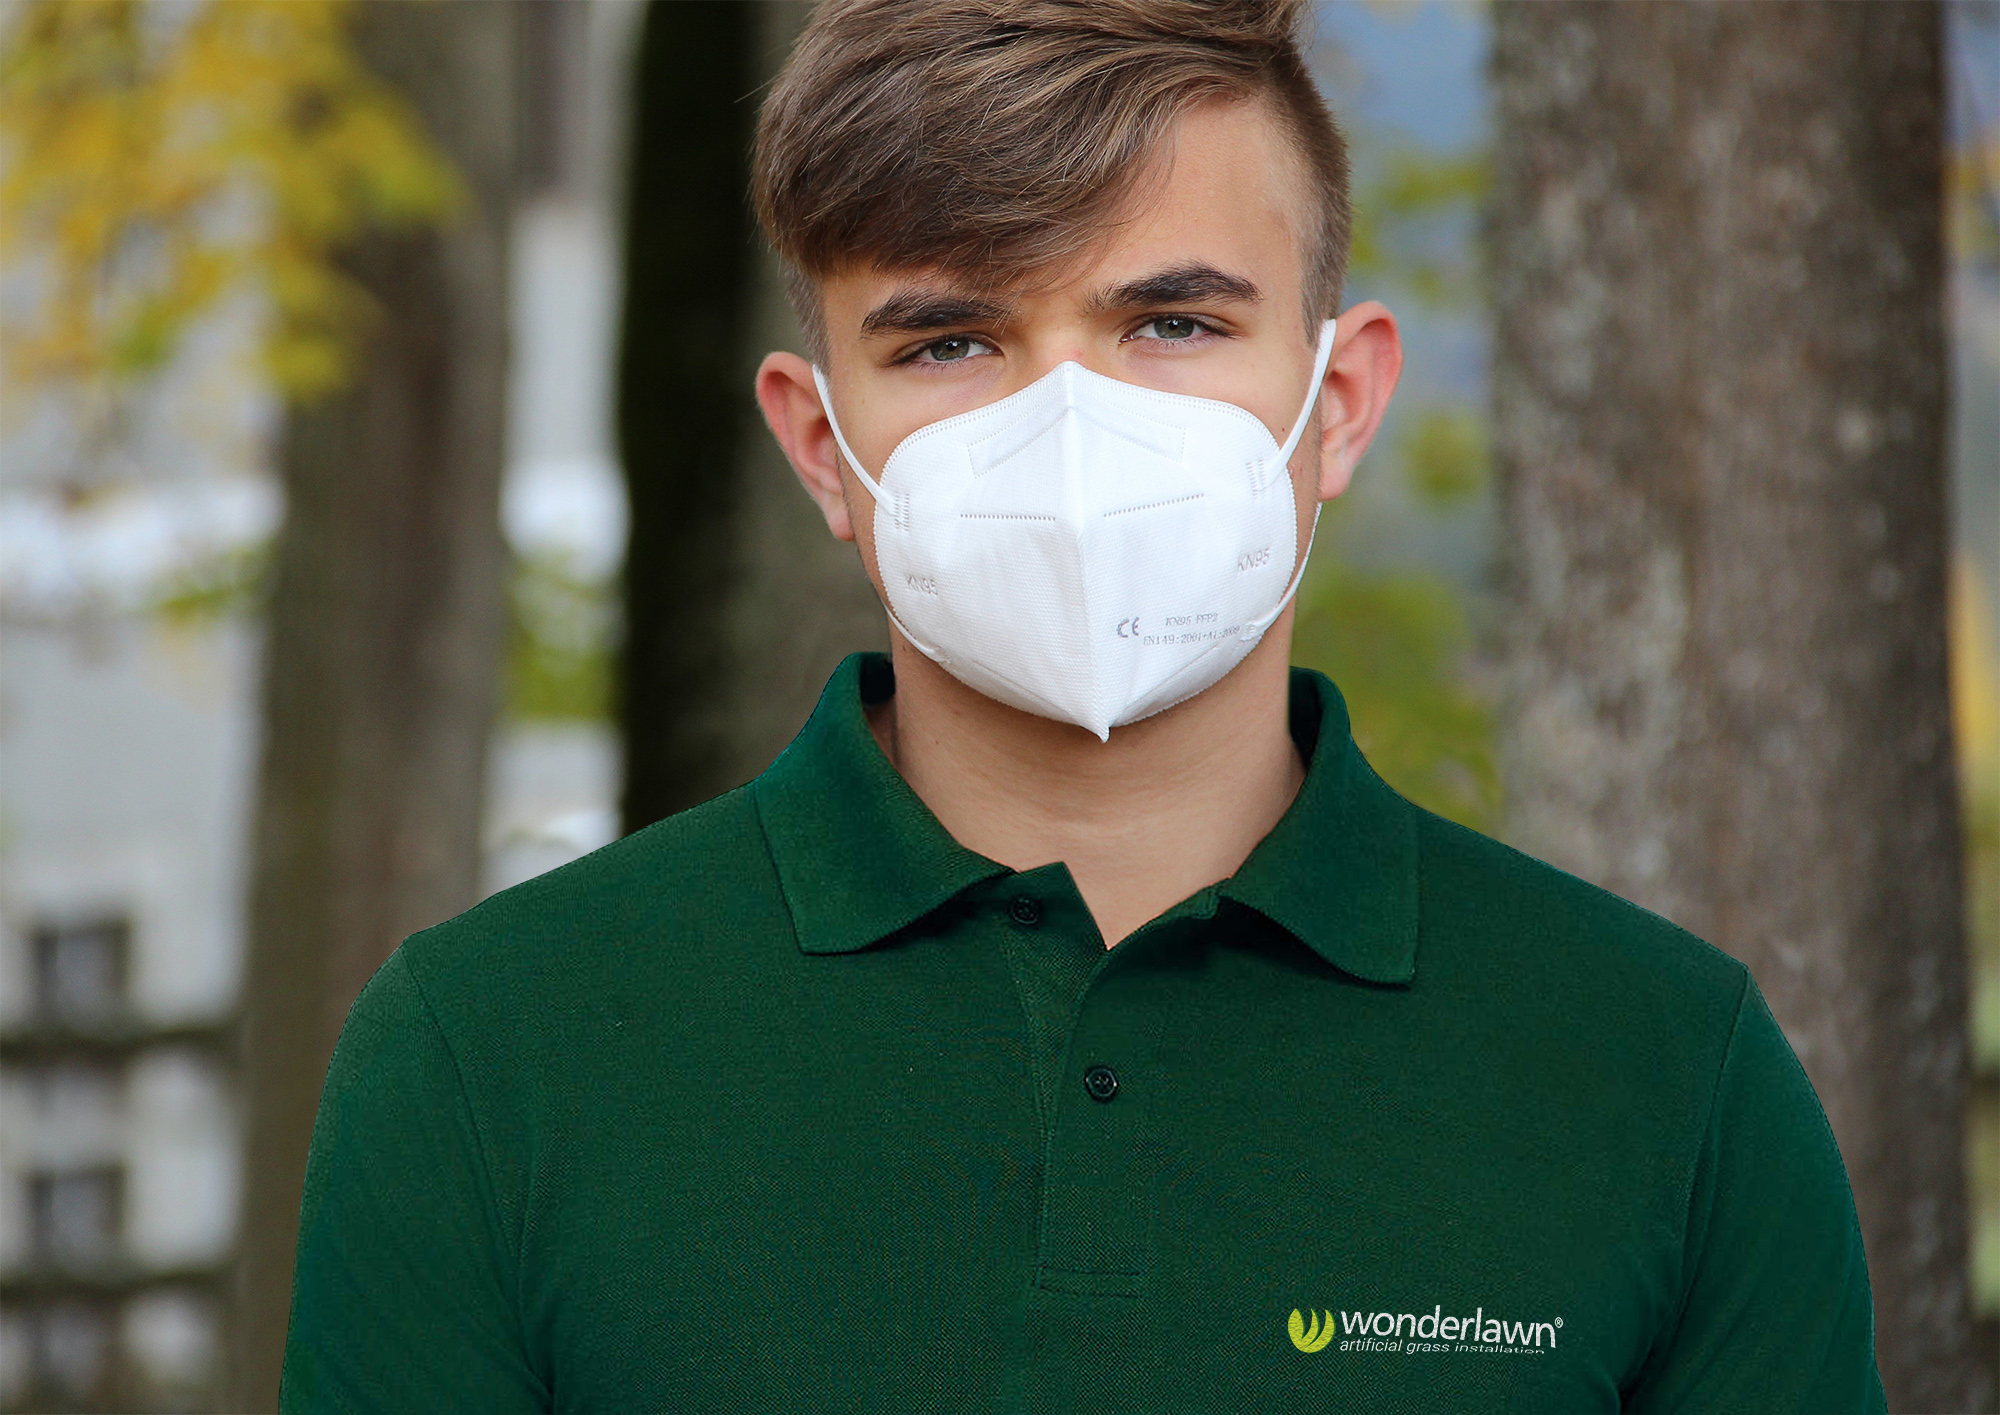 A Wonderlawn Employee staying safe with a covid mask on site